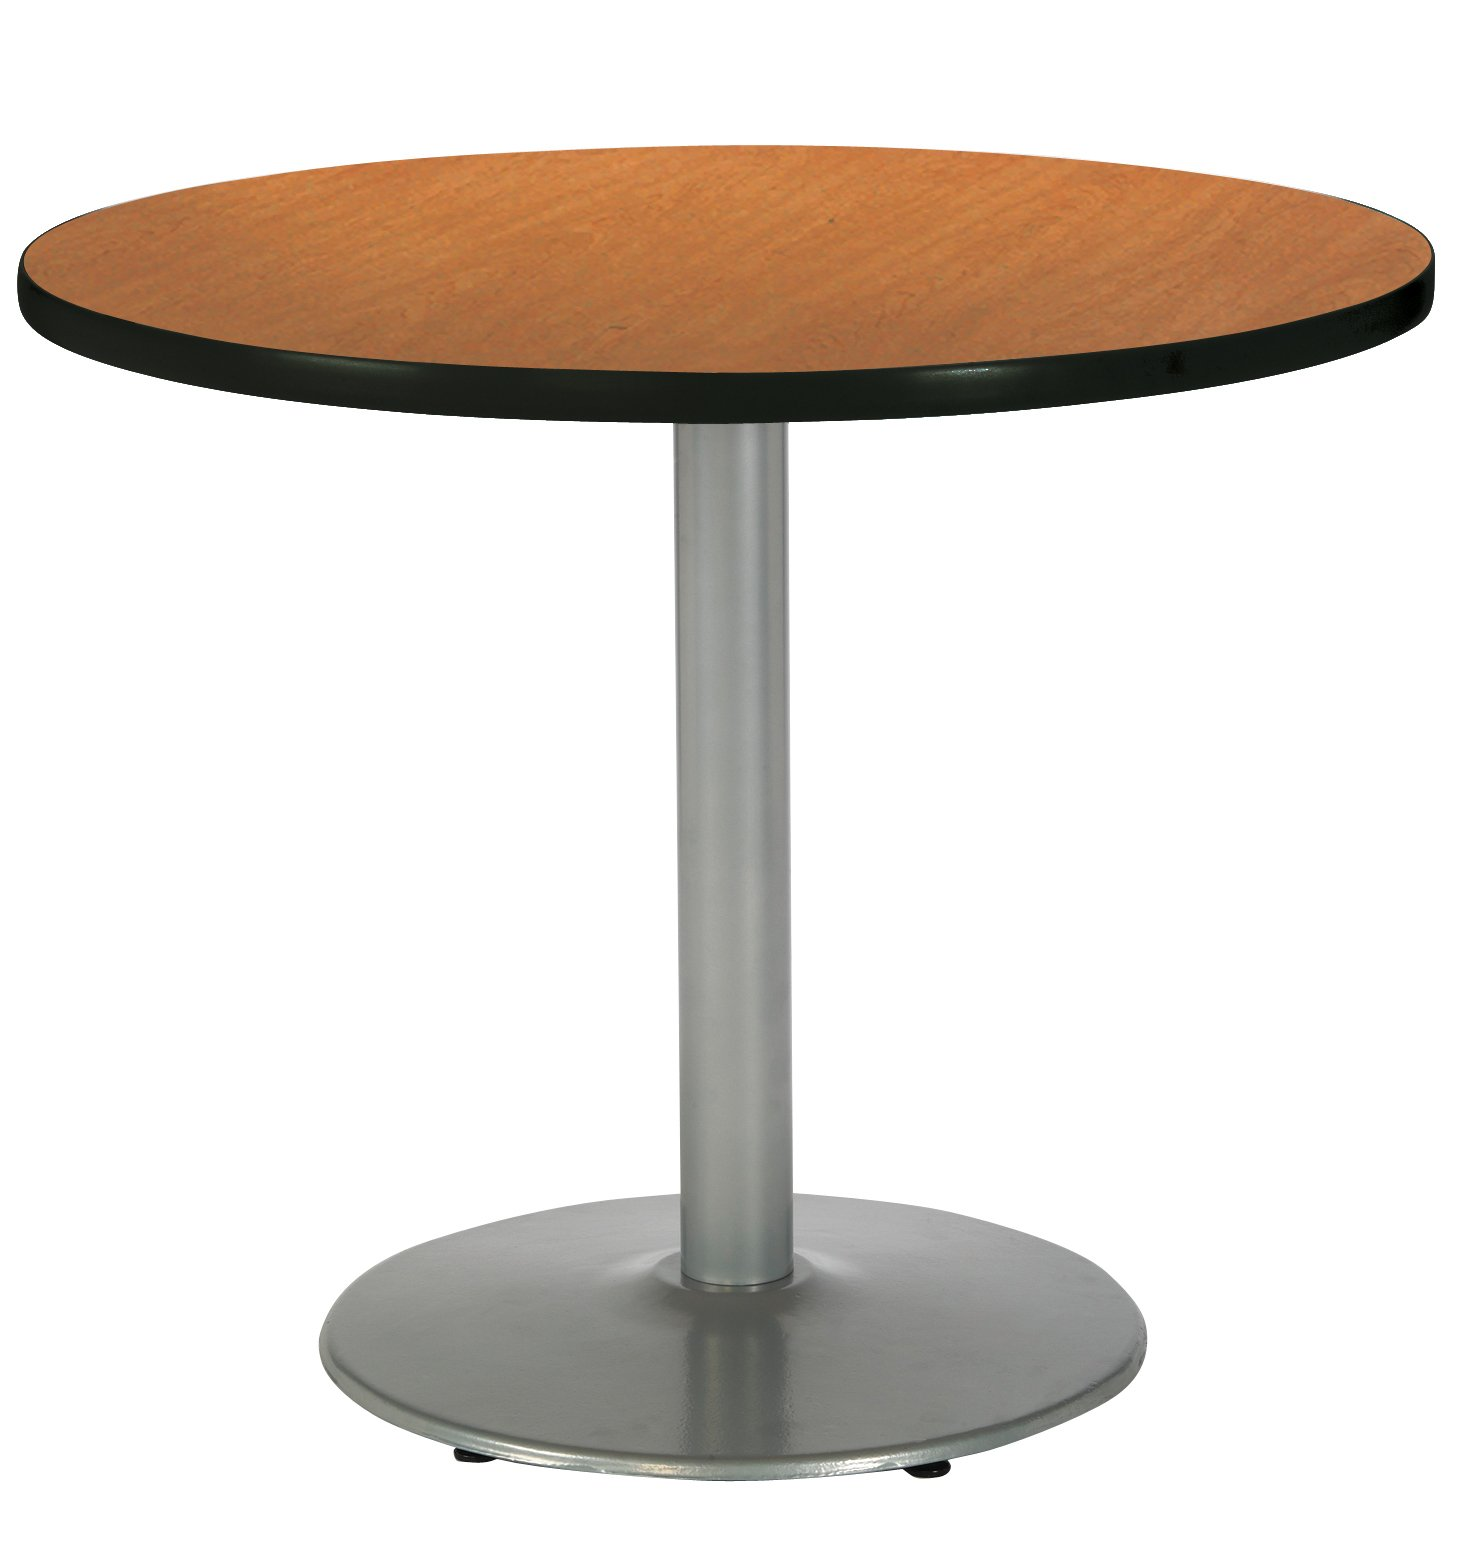 KFI Seating Round Pedestal Table with Round Silver Base, Commercial Grade, 42-Inch, Medium Oak Laminate, Made in the USA